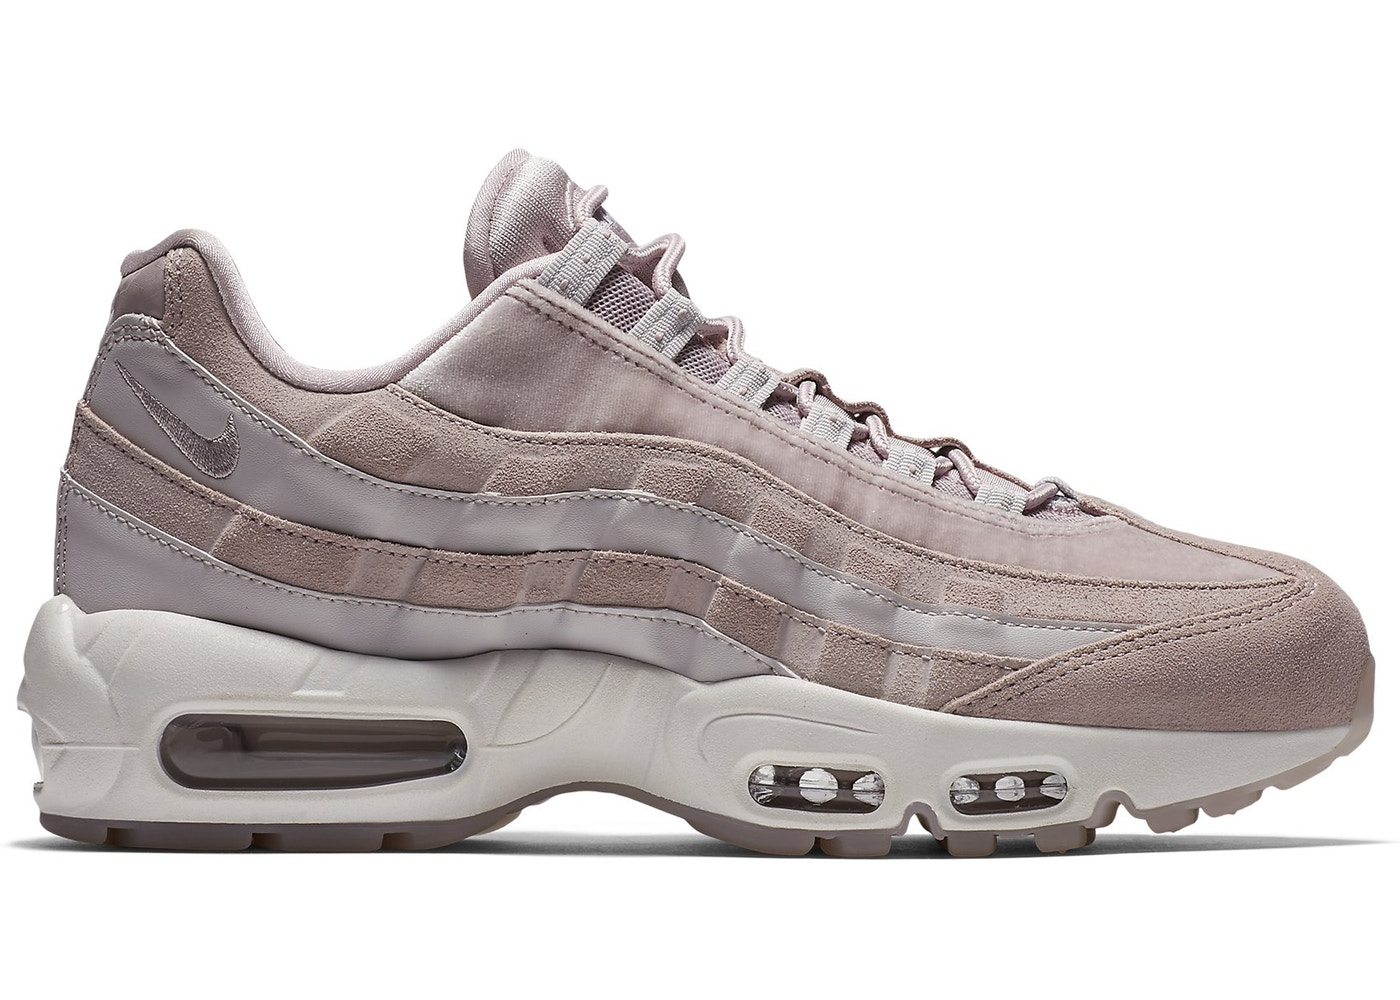 Royaume-Uni disponibilité 82e32 1ebba Air Max 95 Velvet Particle Rose (W)